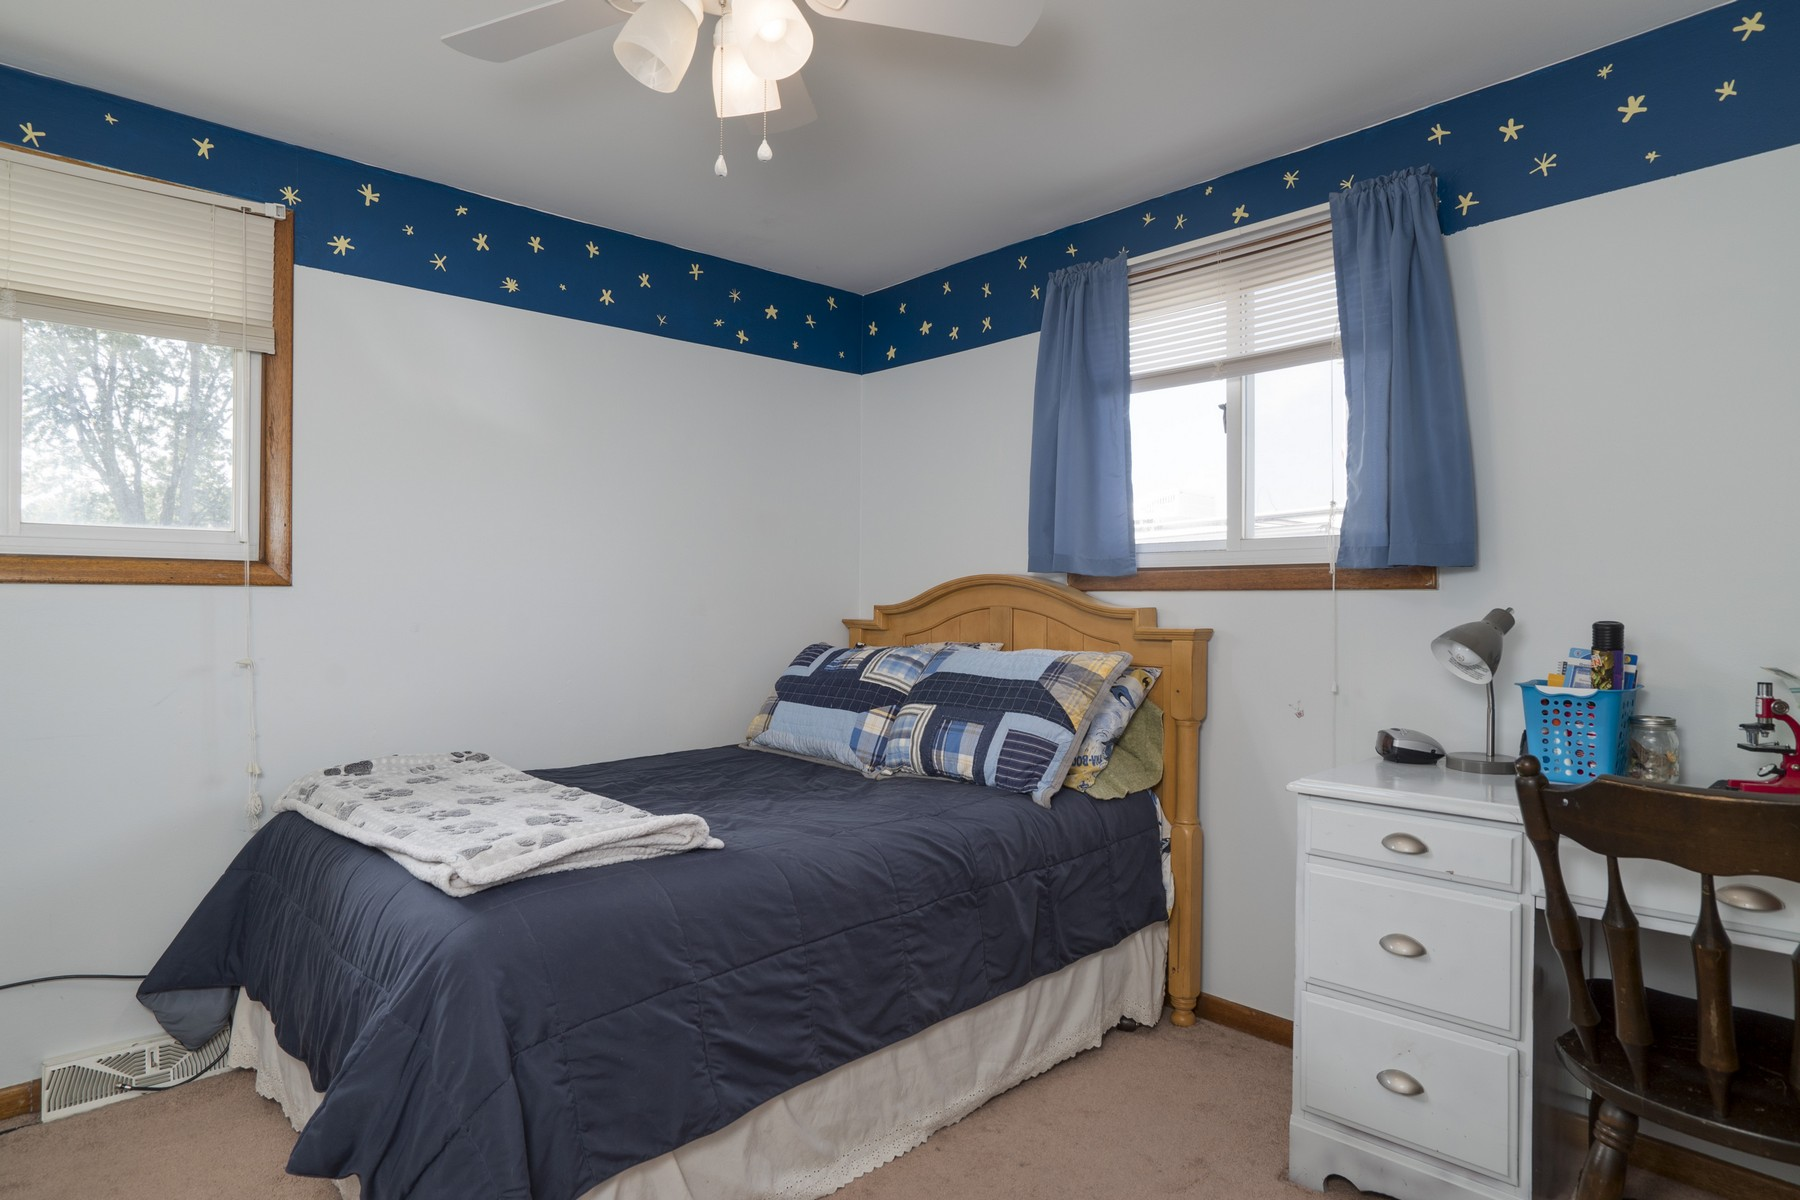 Additional photo for property listing at Home, Sweet Home in West Seneca! 21  Queens Dr West Seneca, Nueva York 14224 Estados Unidos